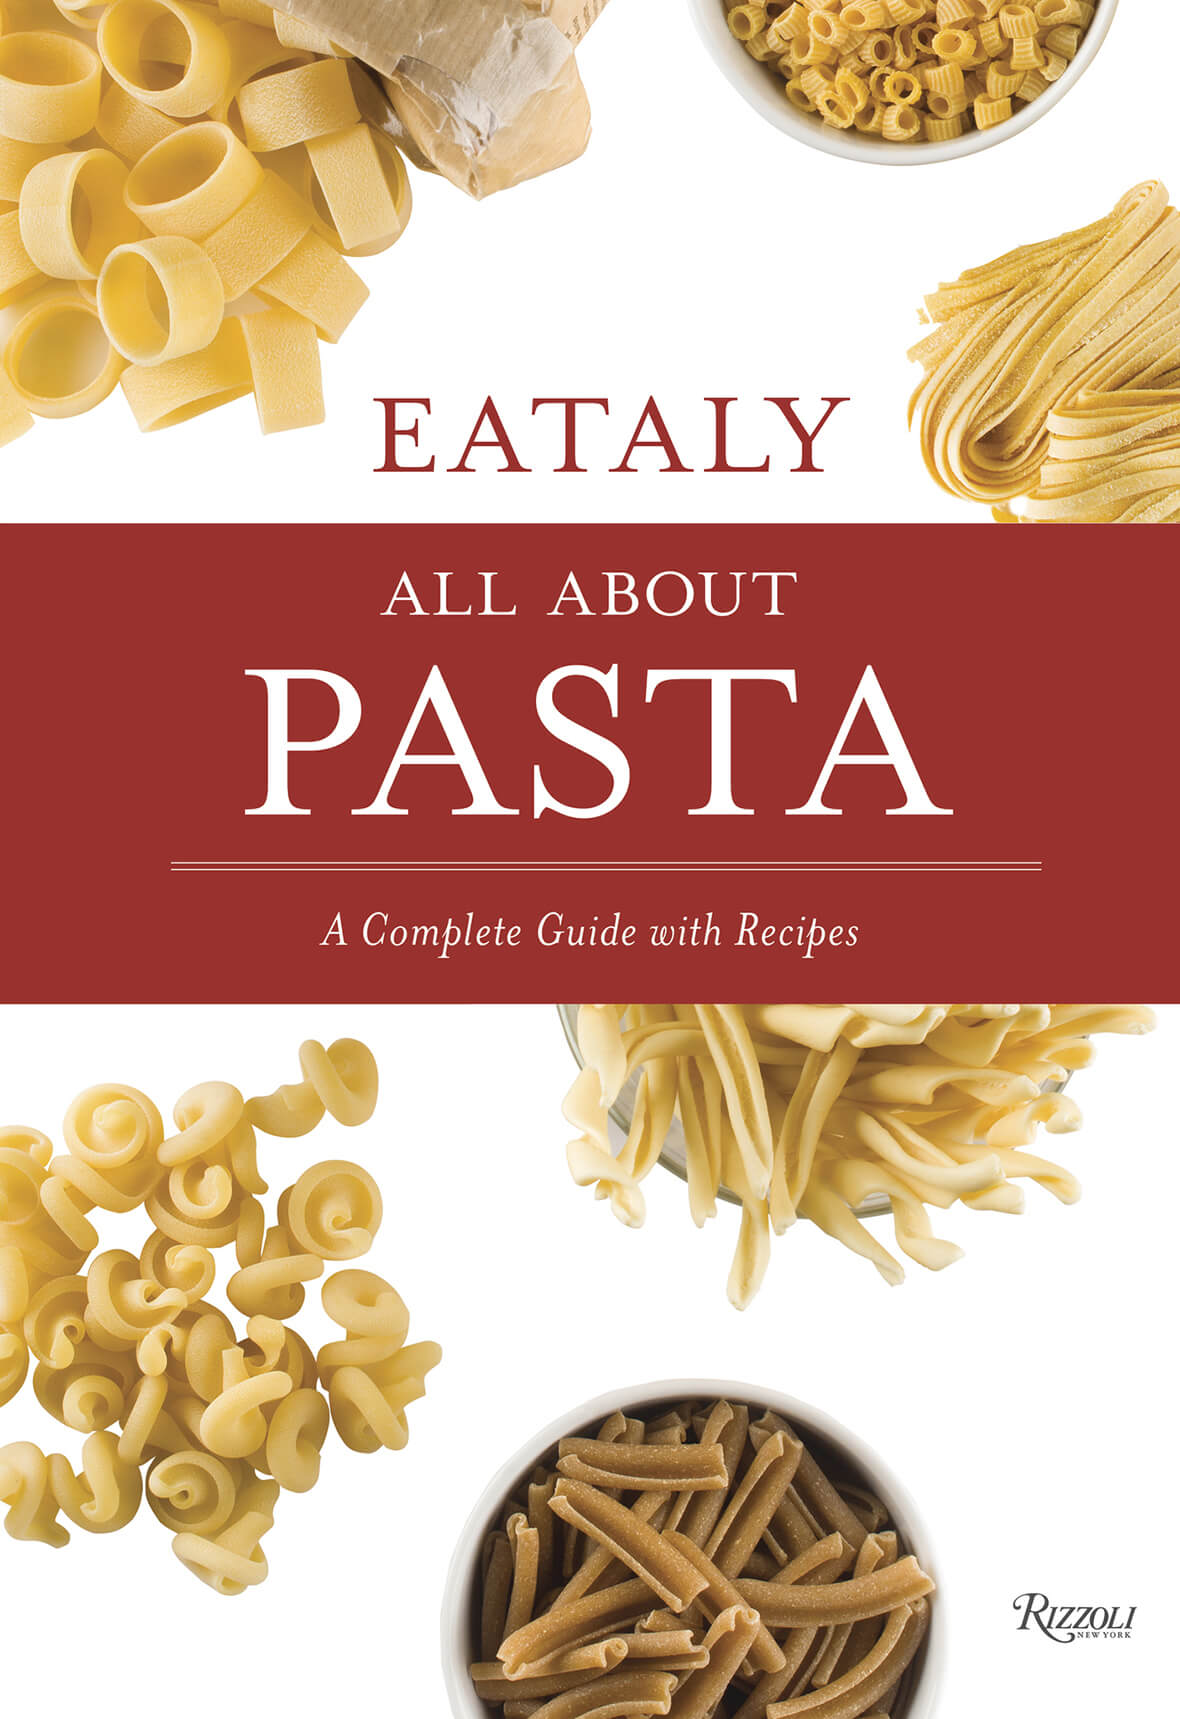 all about pasta eataly